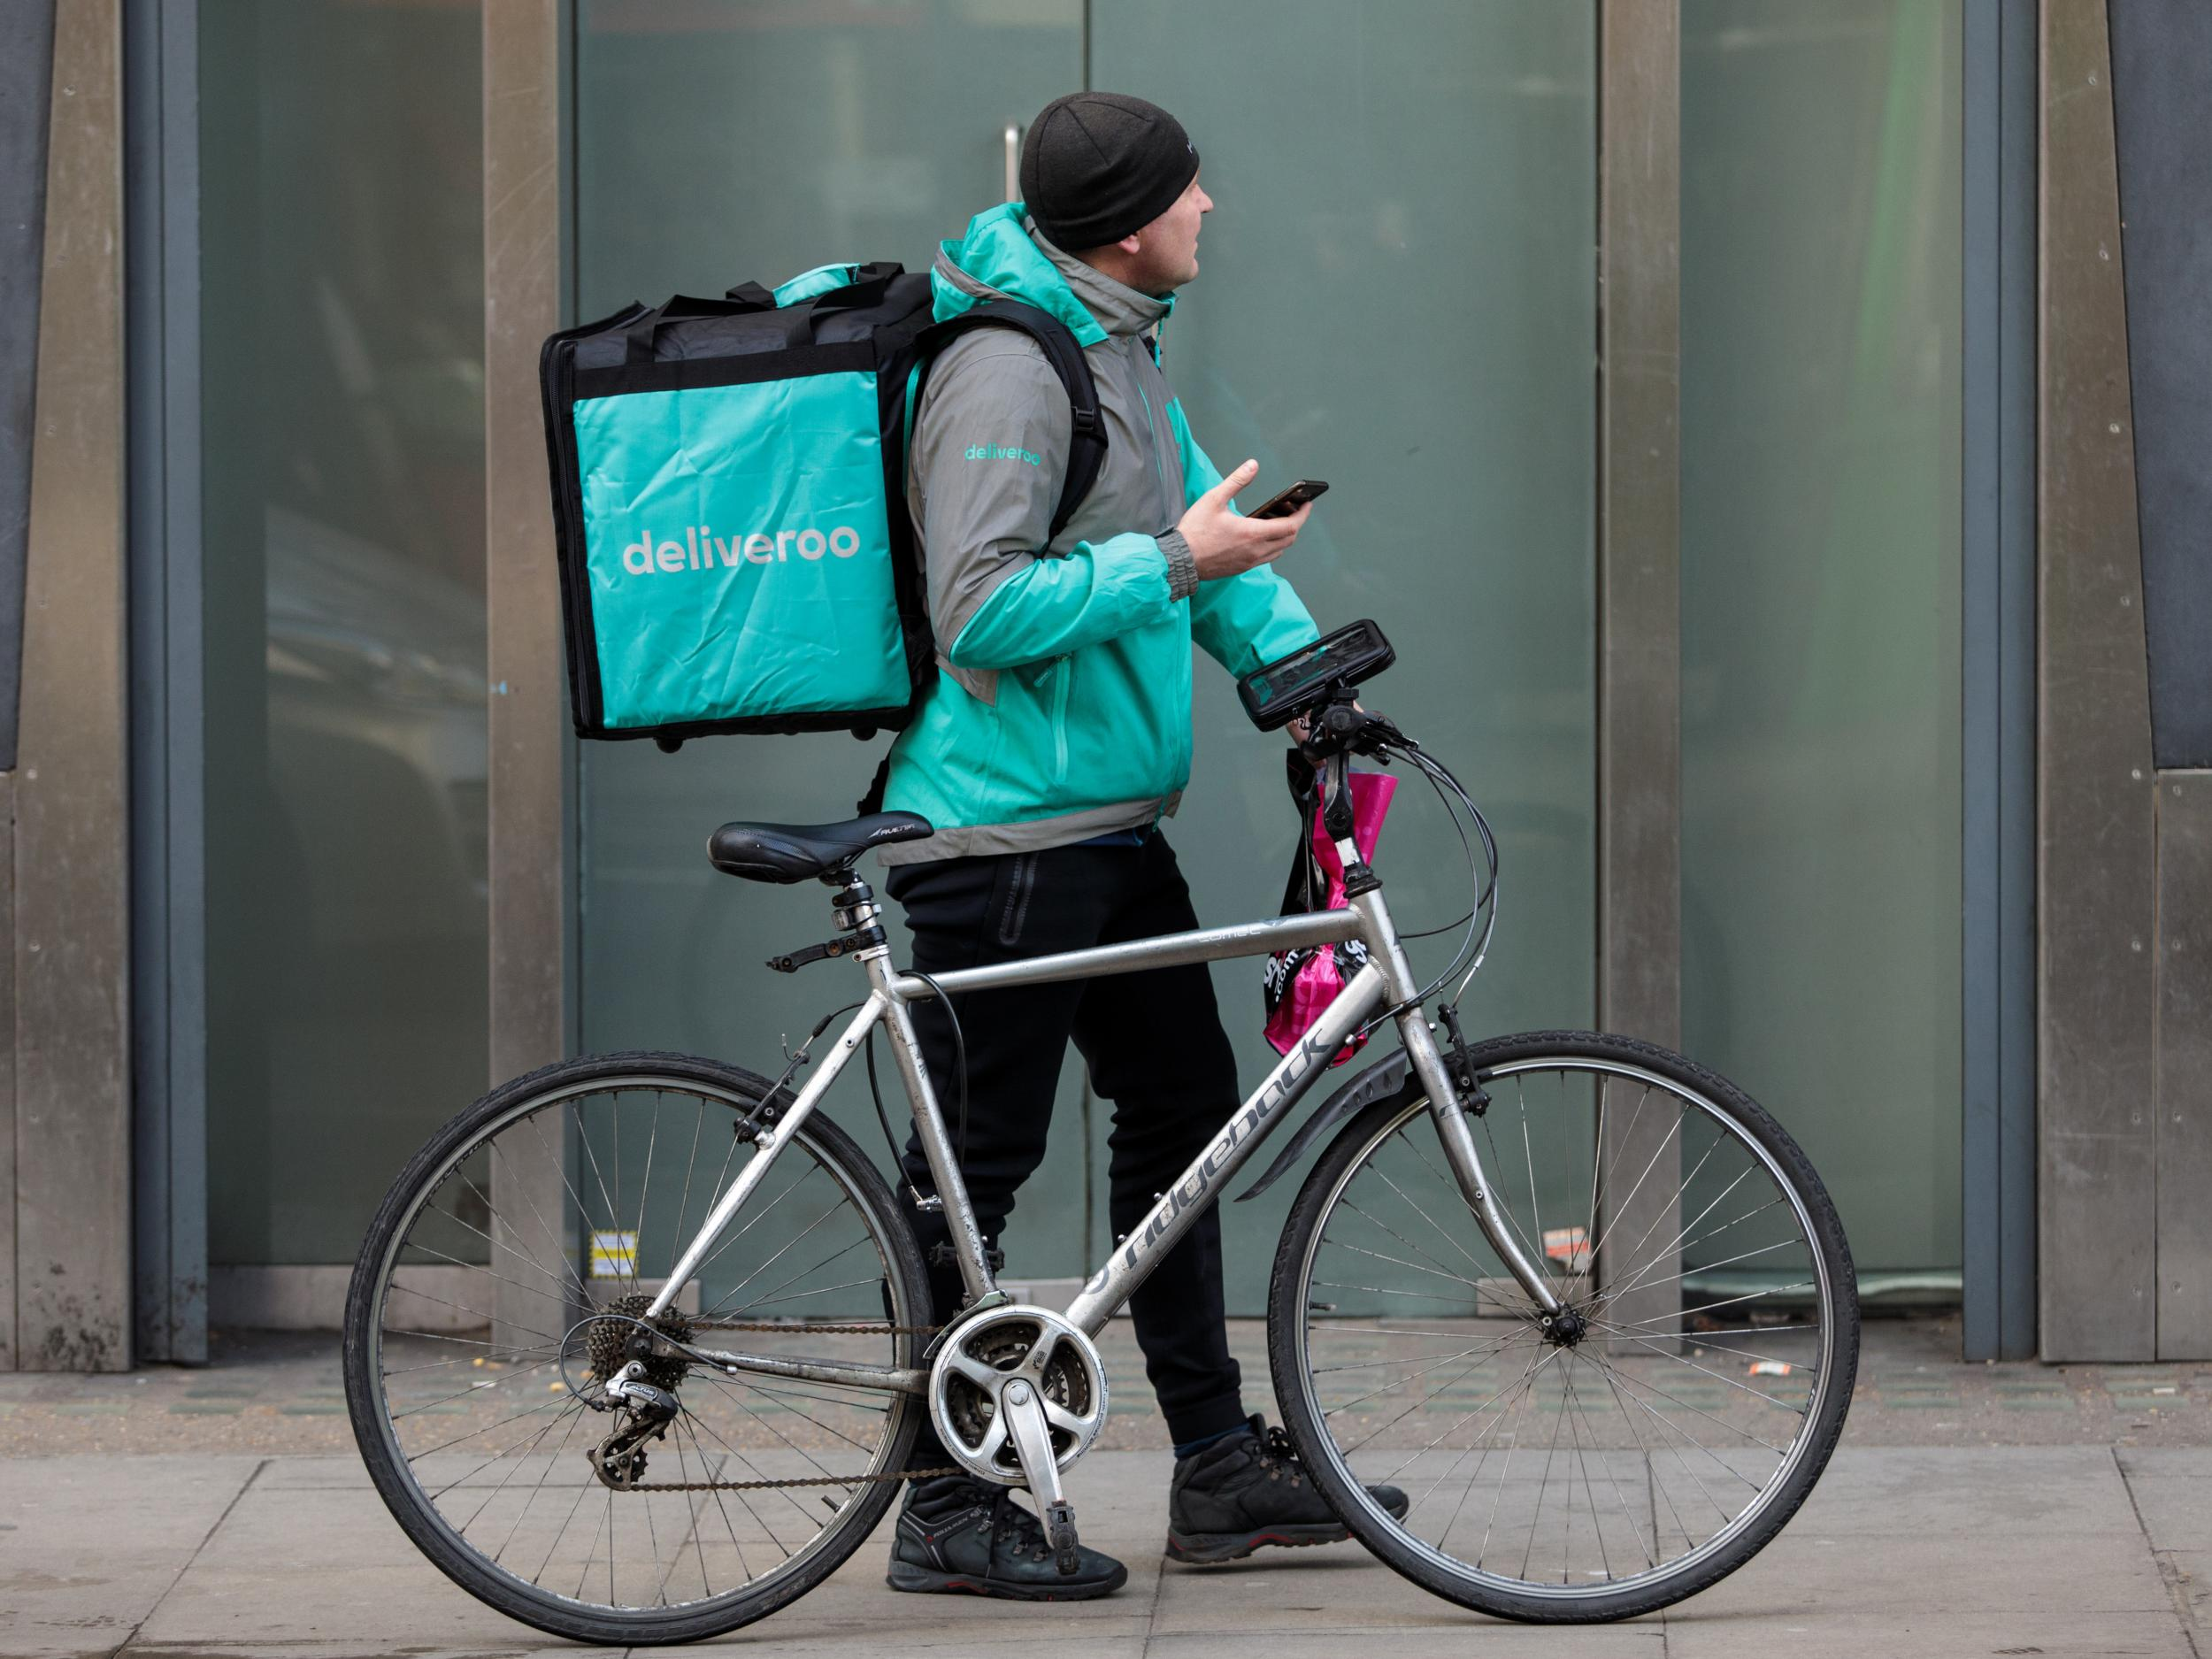 EU introduces new minimum rights for 'gig economy' workers like Uber drivers and Deliveroo riders